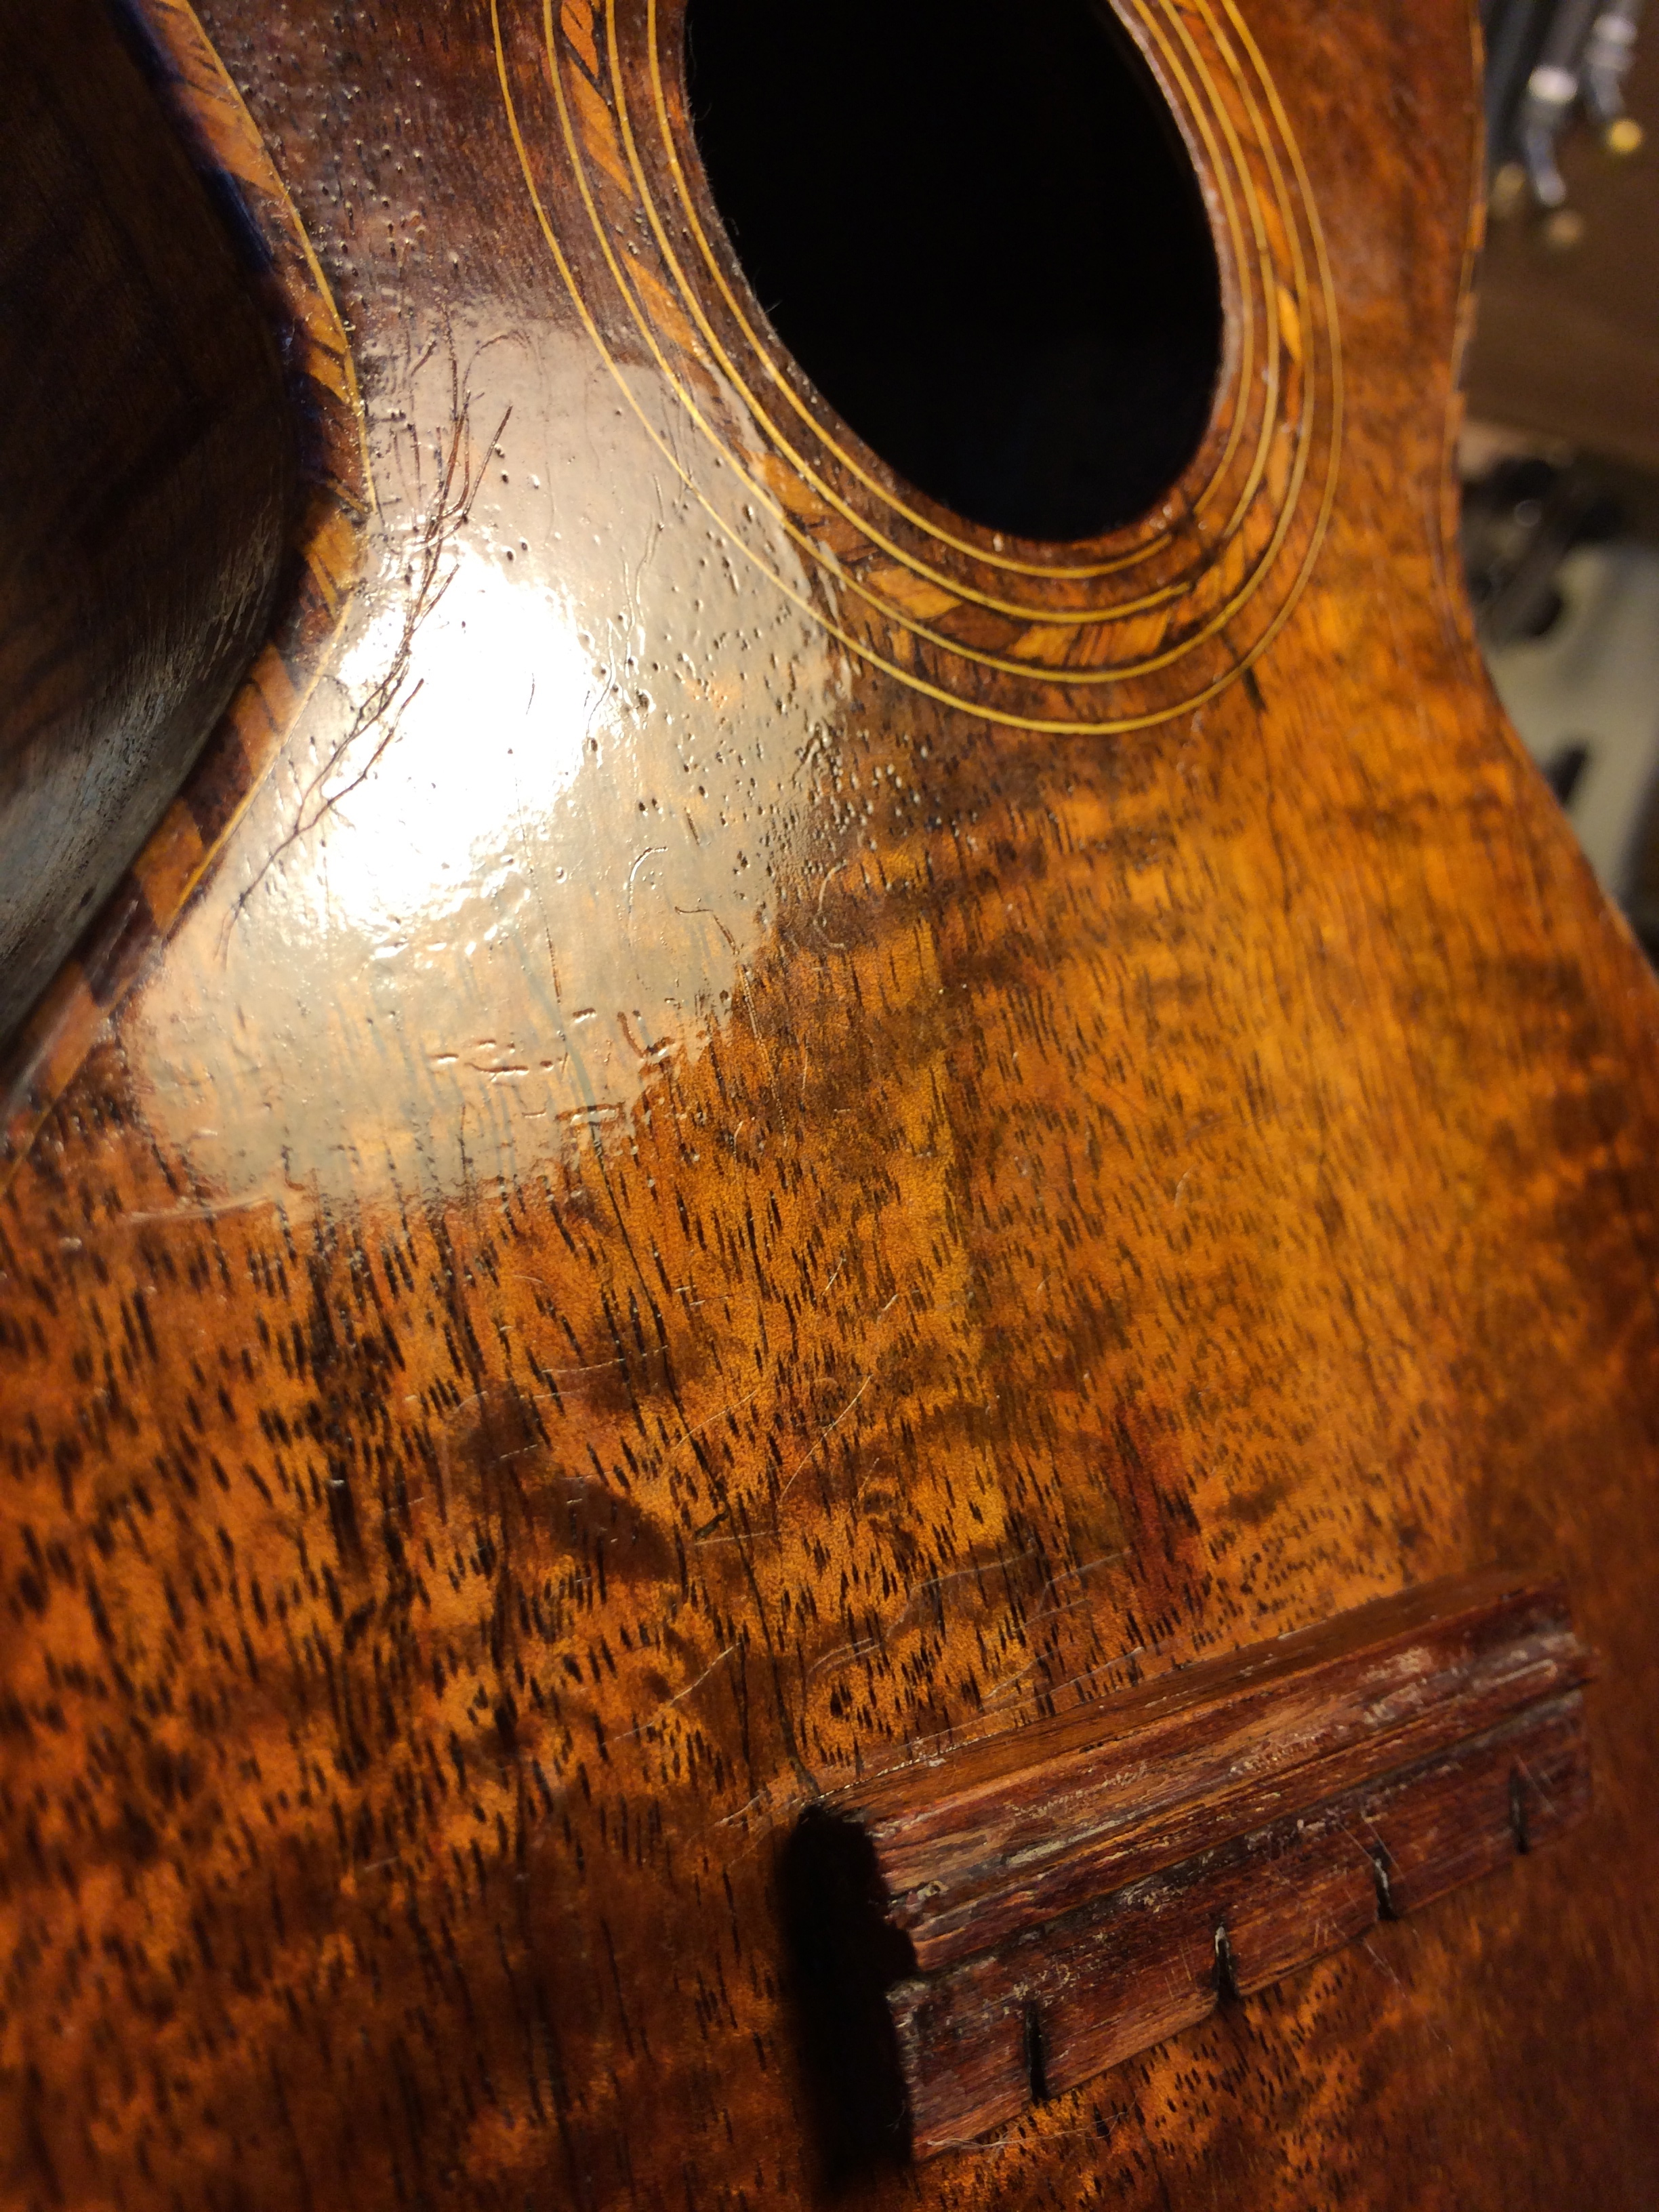 An antiqued finish to match the rest of the ukulele, which is in surprisingly good condition.